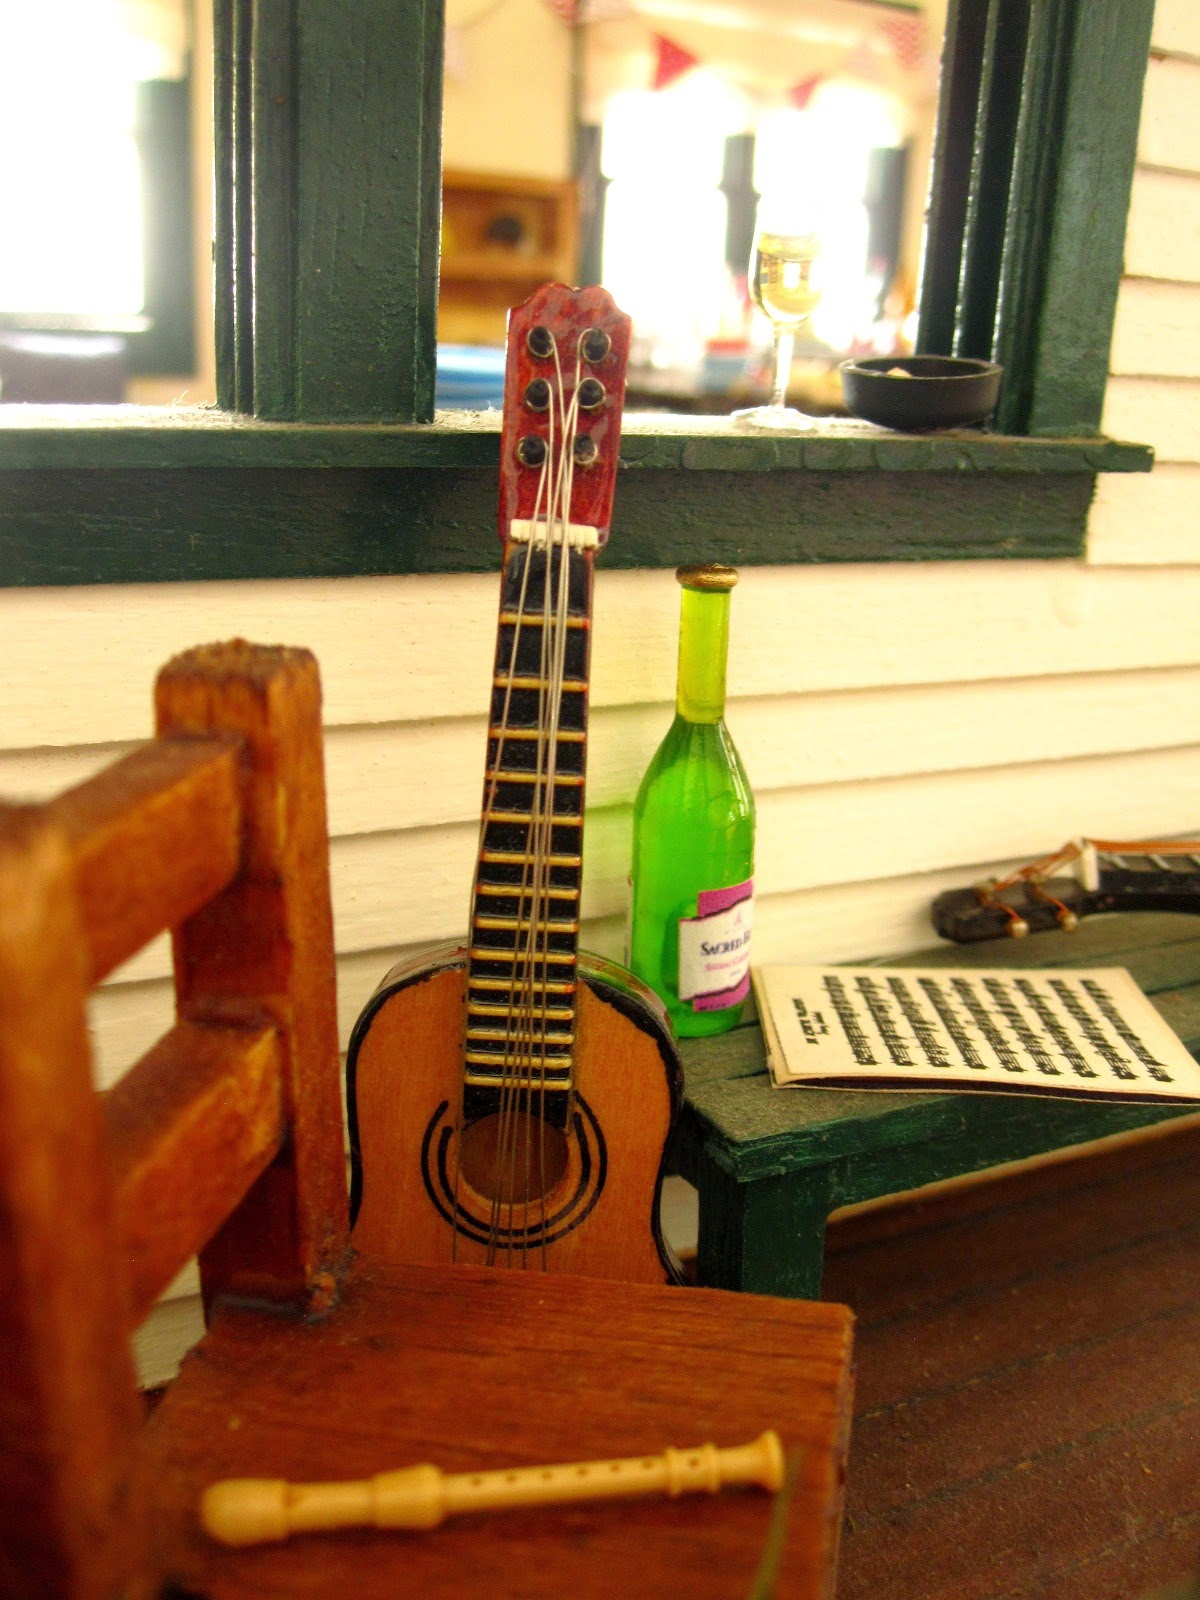 A miniature dolls' house veranda, with seating, a bottle and glass of wine, a recorder, guitar, ukulele and sheet of music.